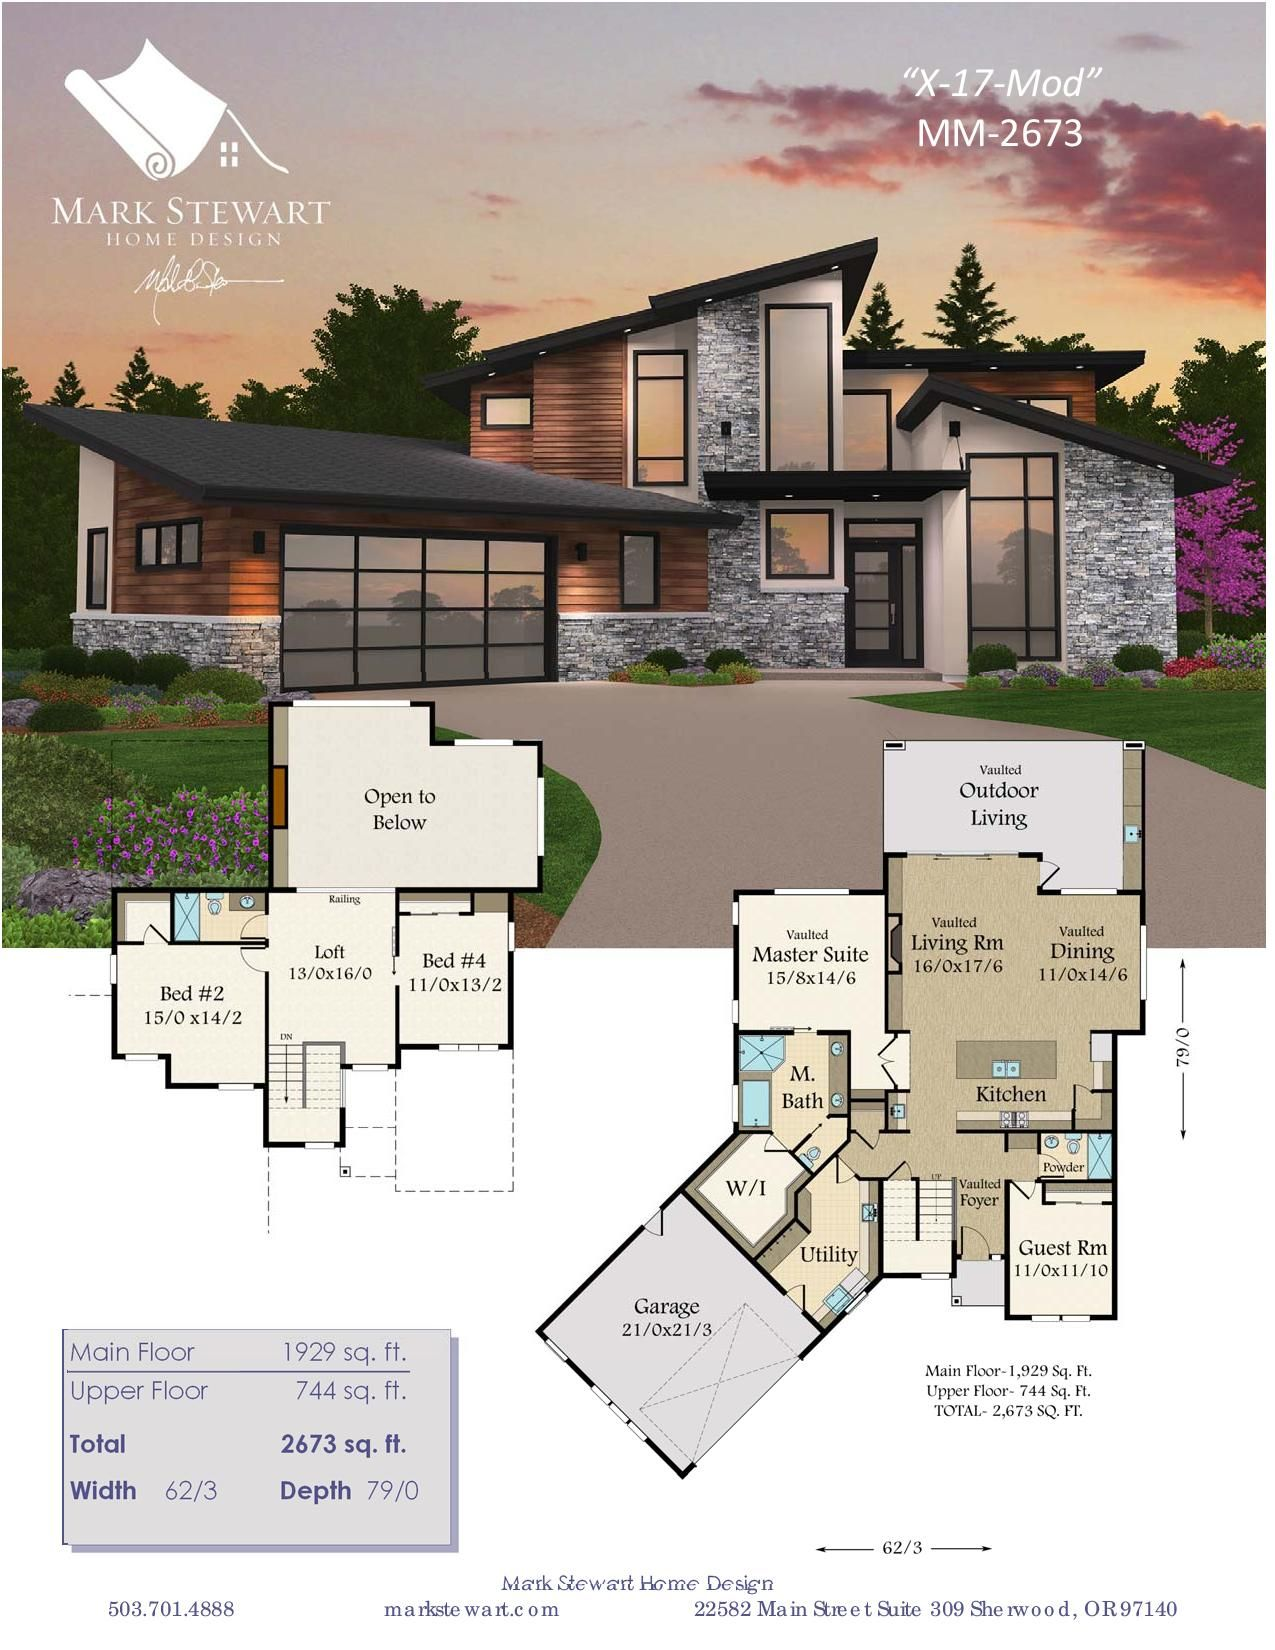 A Modern Empty Nester House Plan With Unique And Award Winning Appeal Modern House Floor Plans Sims 4 House Design Sims House Plans